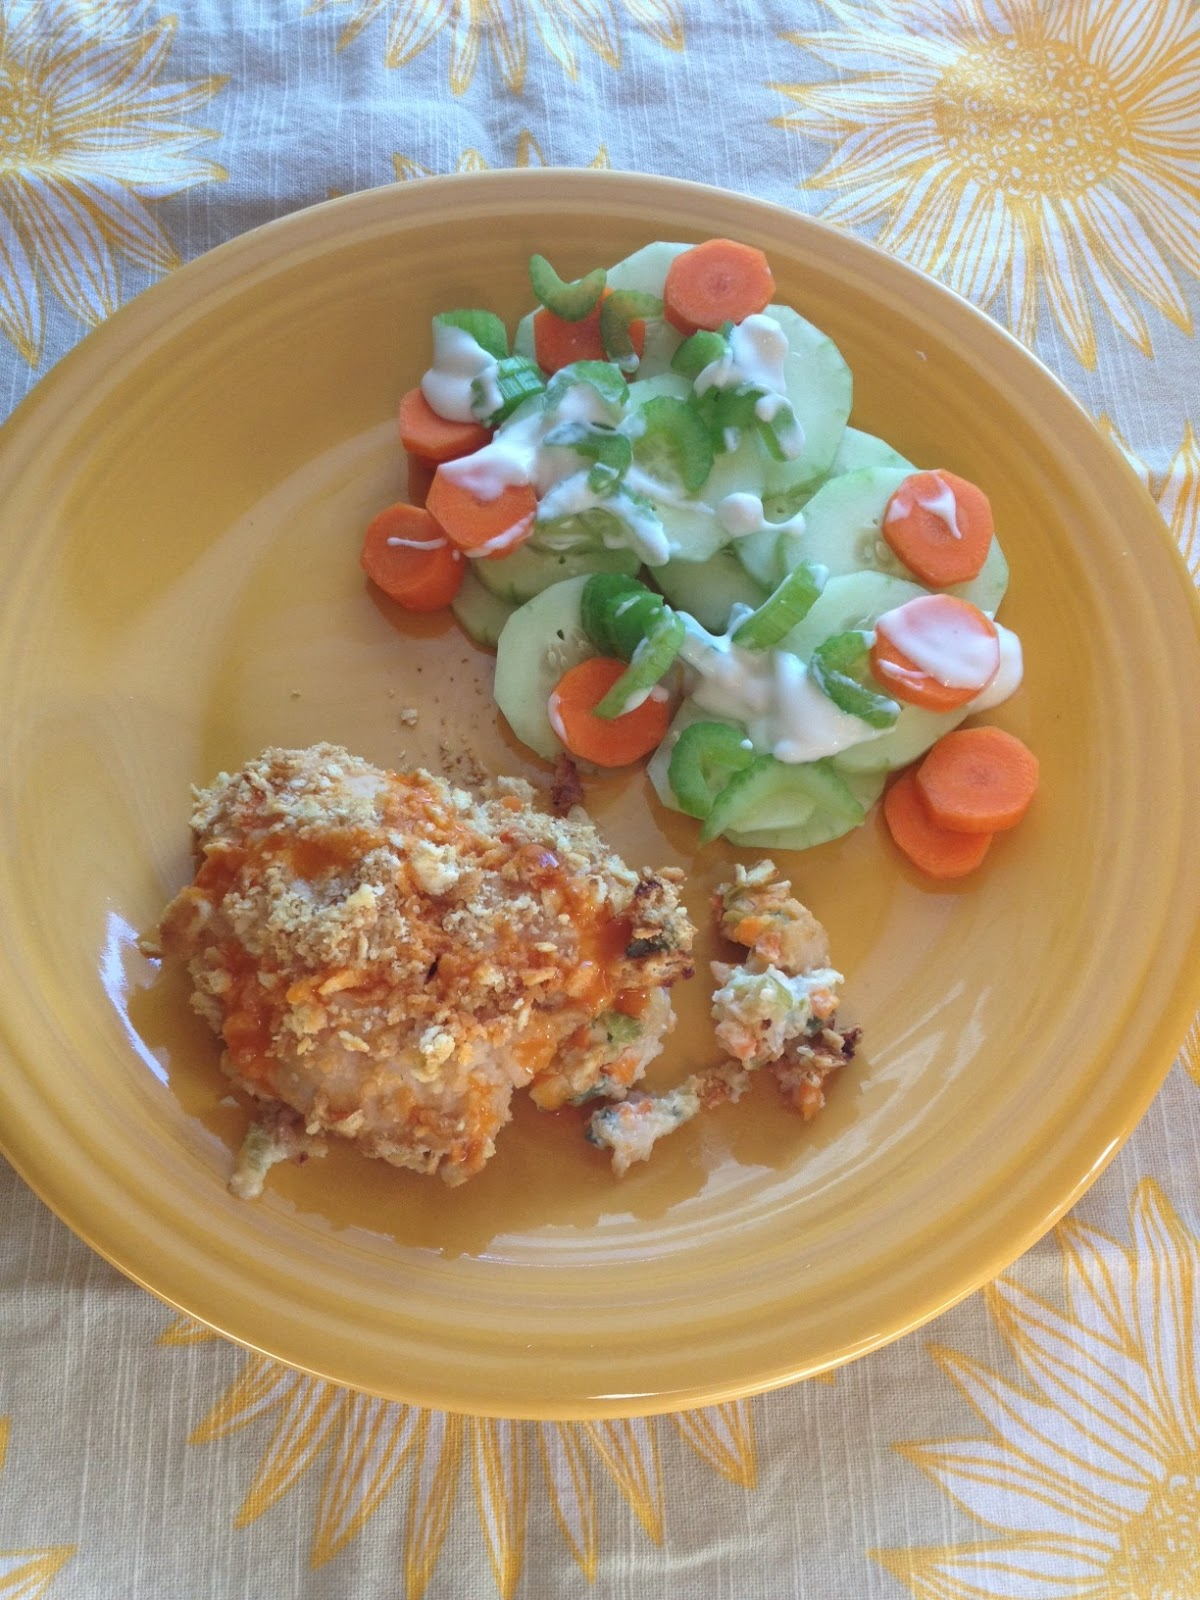 EAT ME: Buffalo Stuffed Chicken Breasts